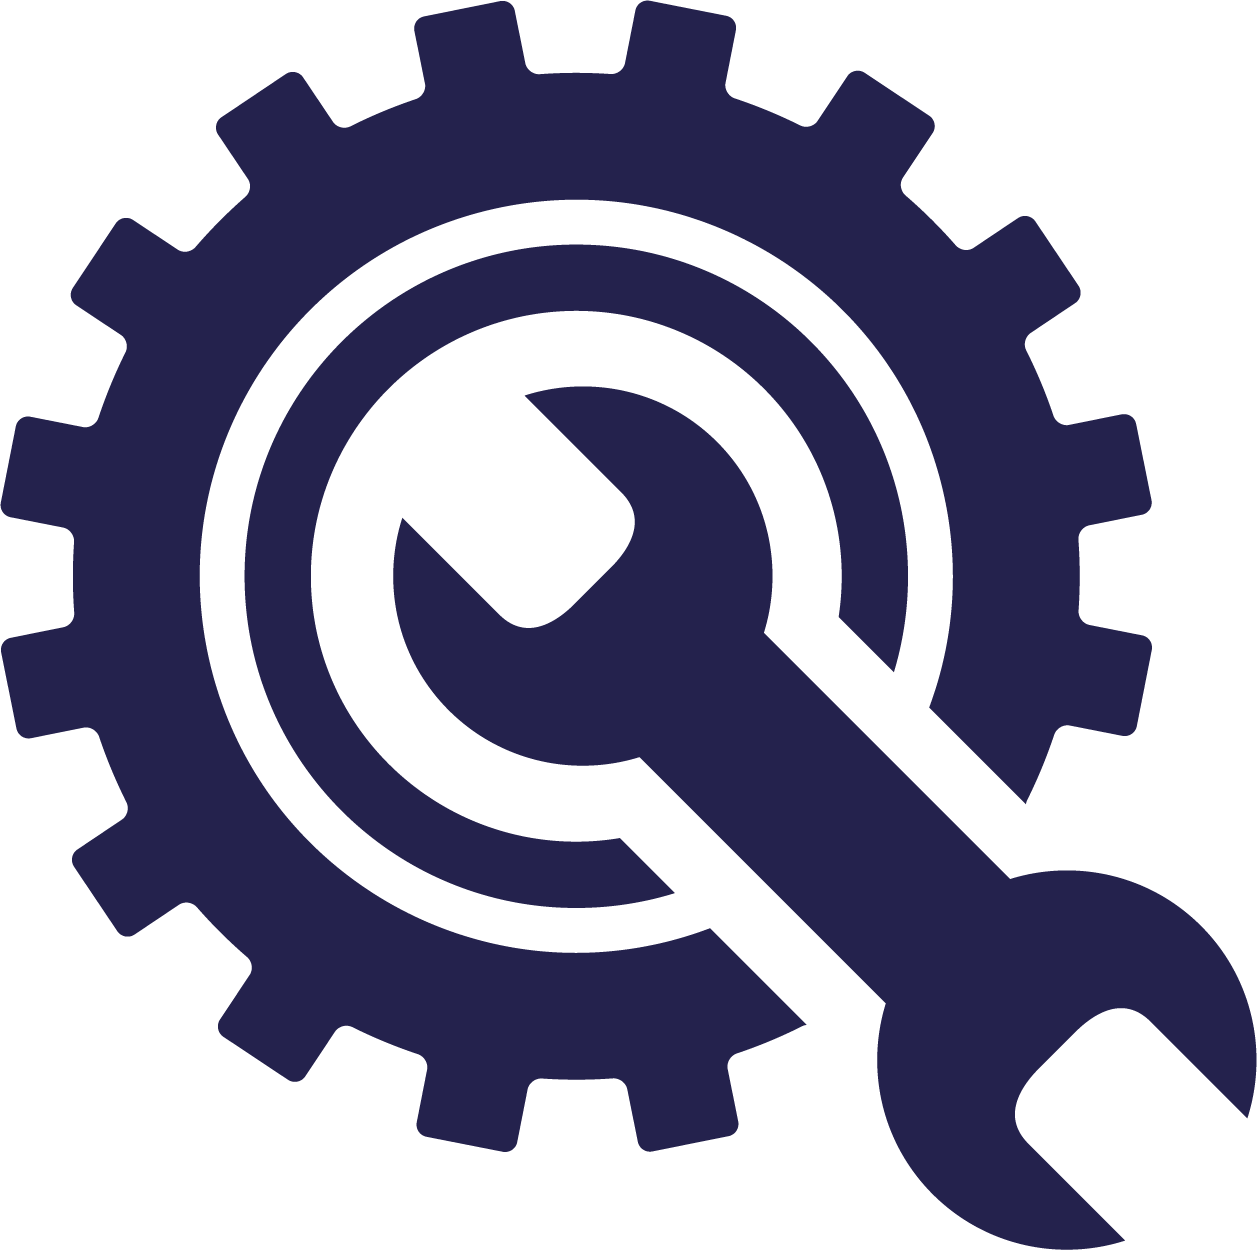 Jobs resourcing solutions limited. Engineering clipart engineering process